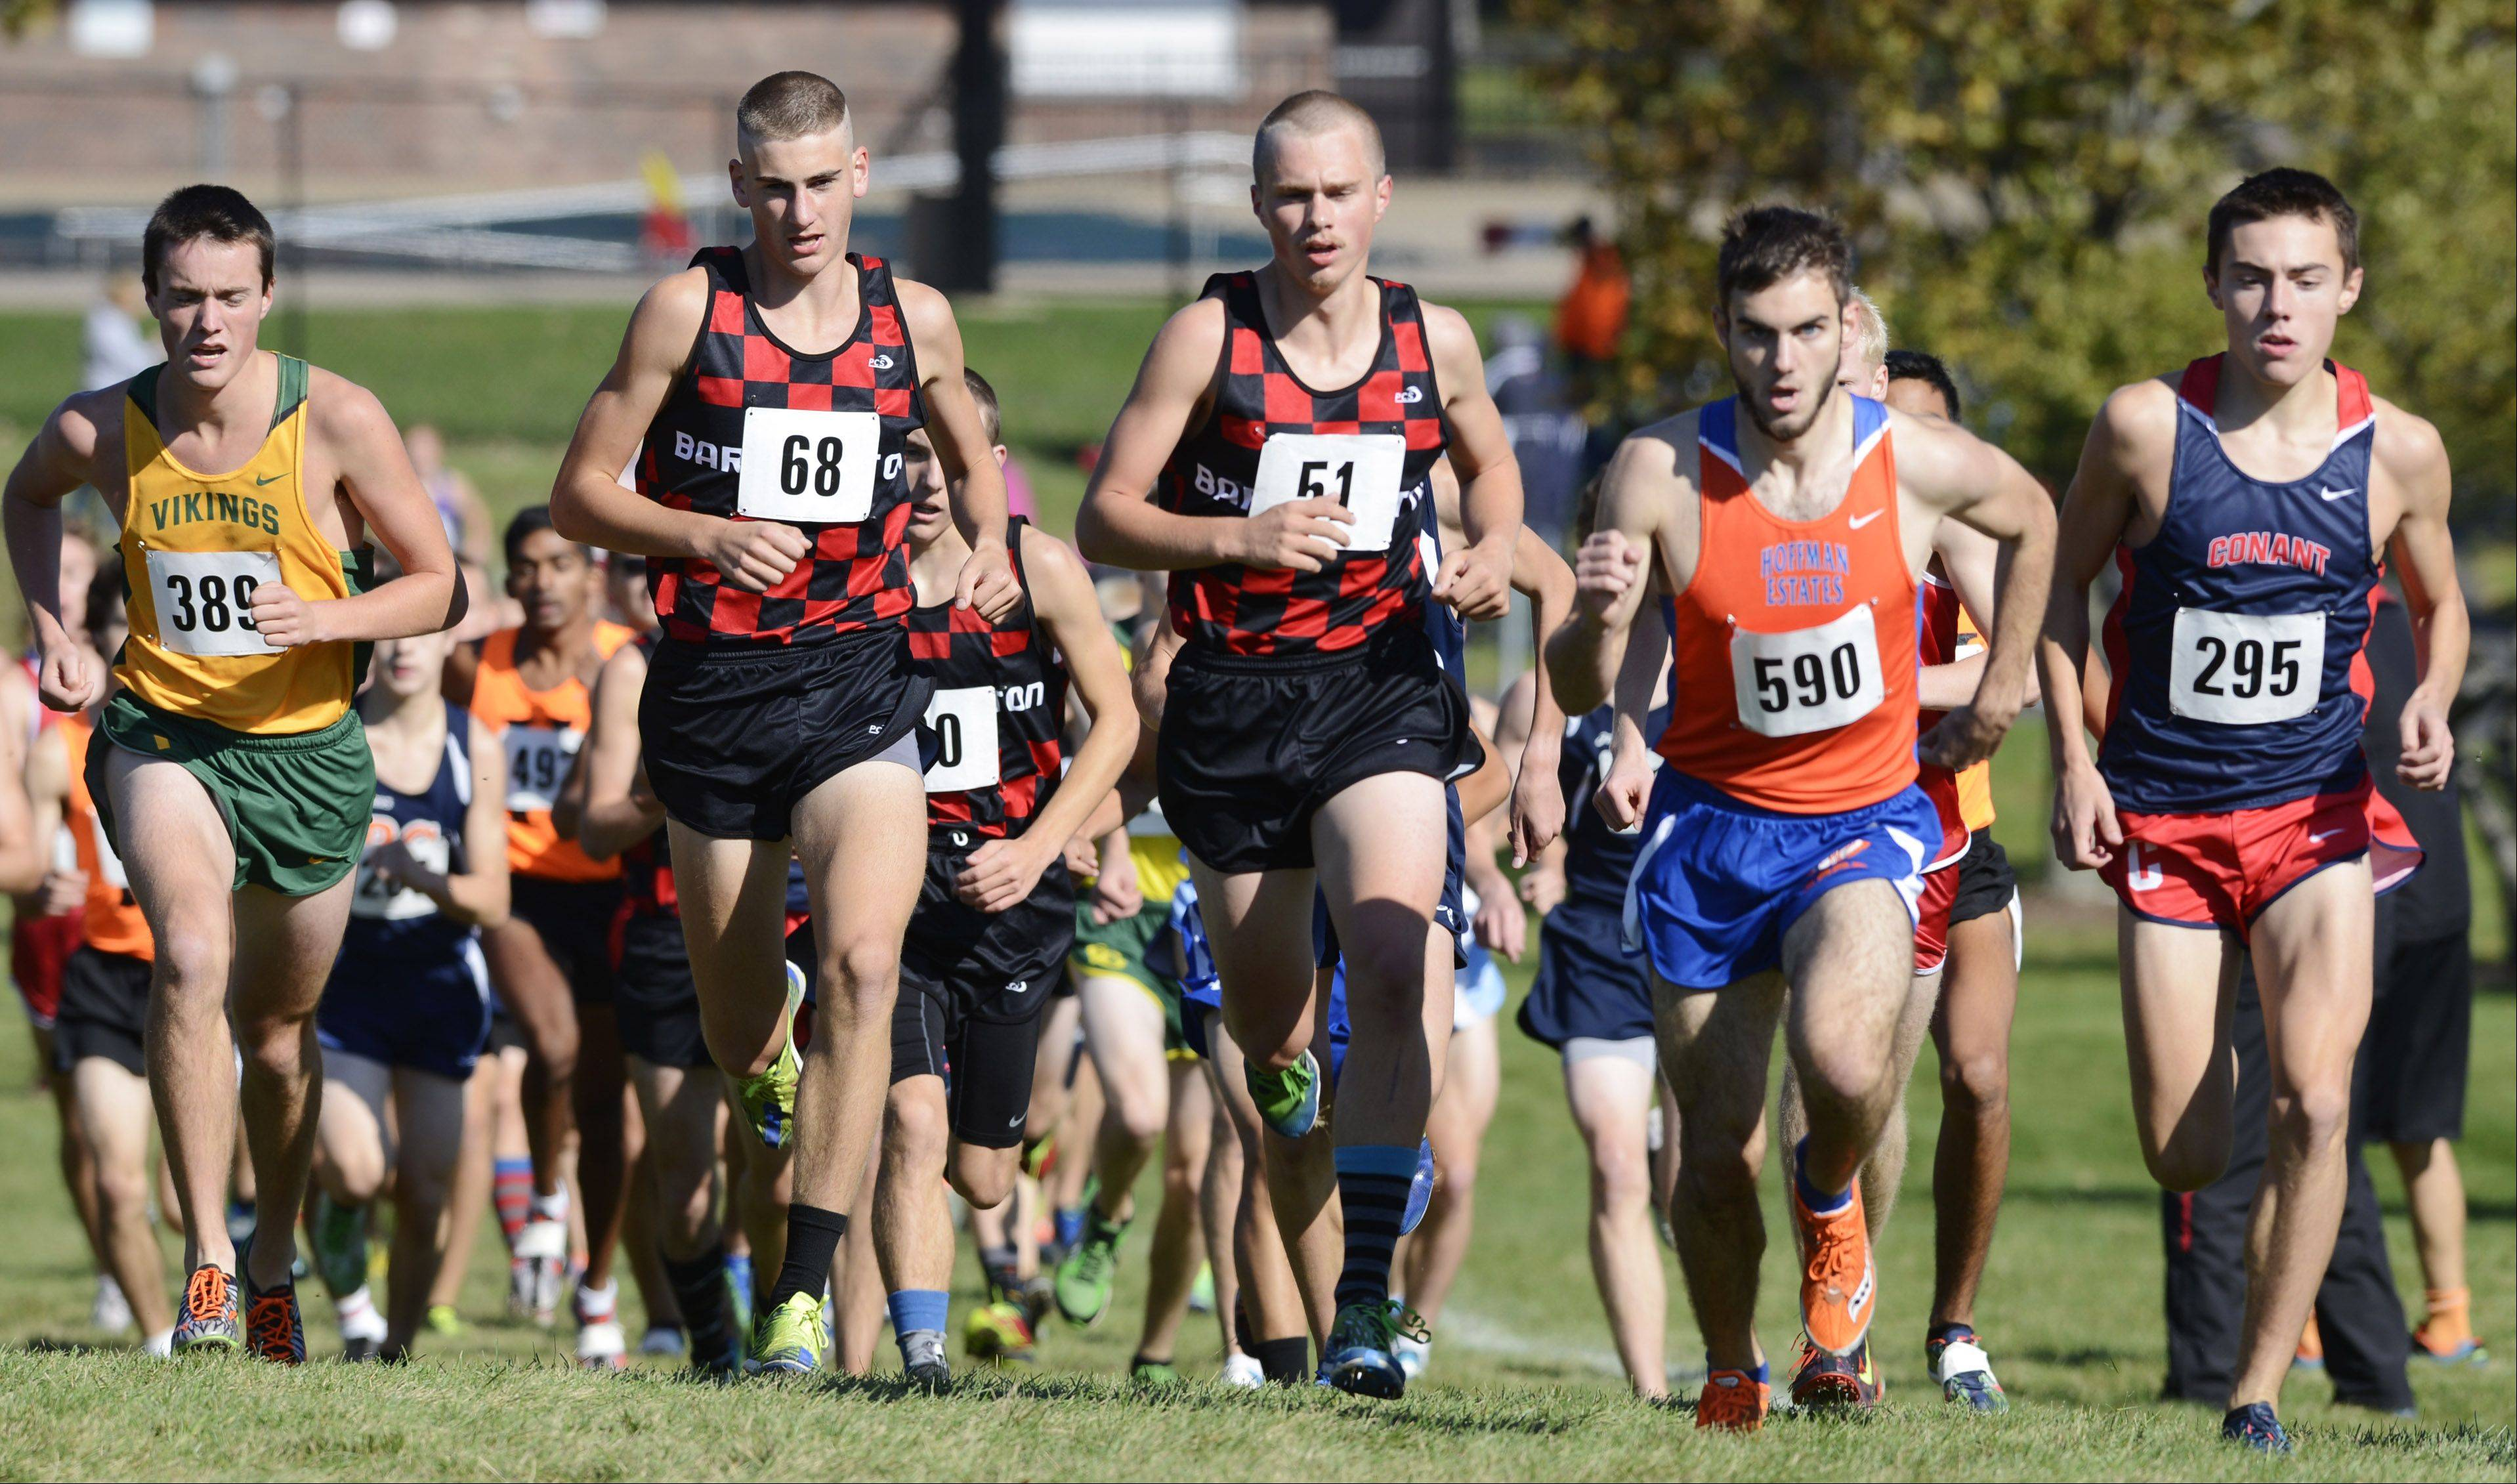 From left, Fremd's Harrison Winter, Barrington's Konrad Eiring and Jake Herb, Hoffman Estates's Billy Thomas and Conant's Zach Dale run side-by-side early during the Mid-Suburban League cross country meet at Willow Stream Park in Buffalo Grove on Saturday.